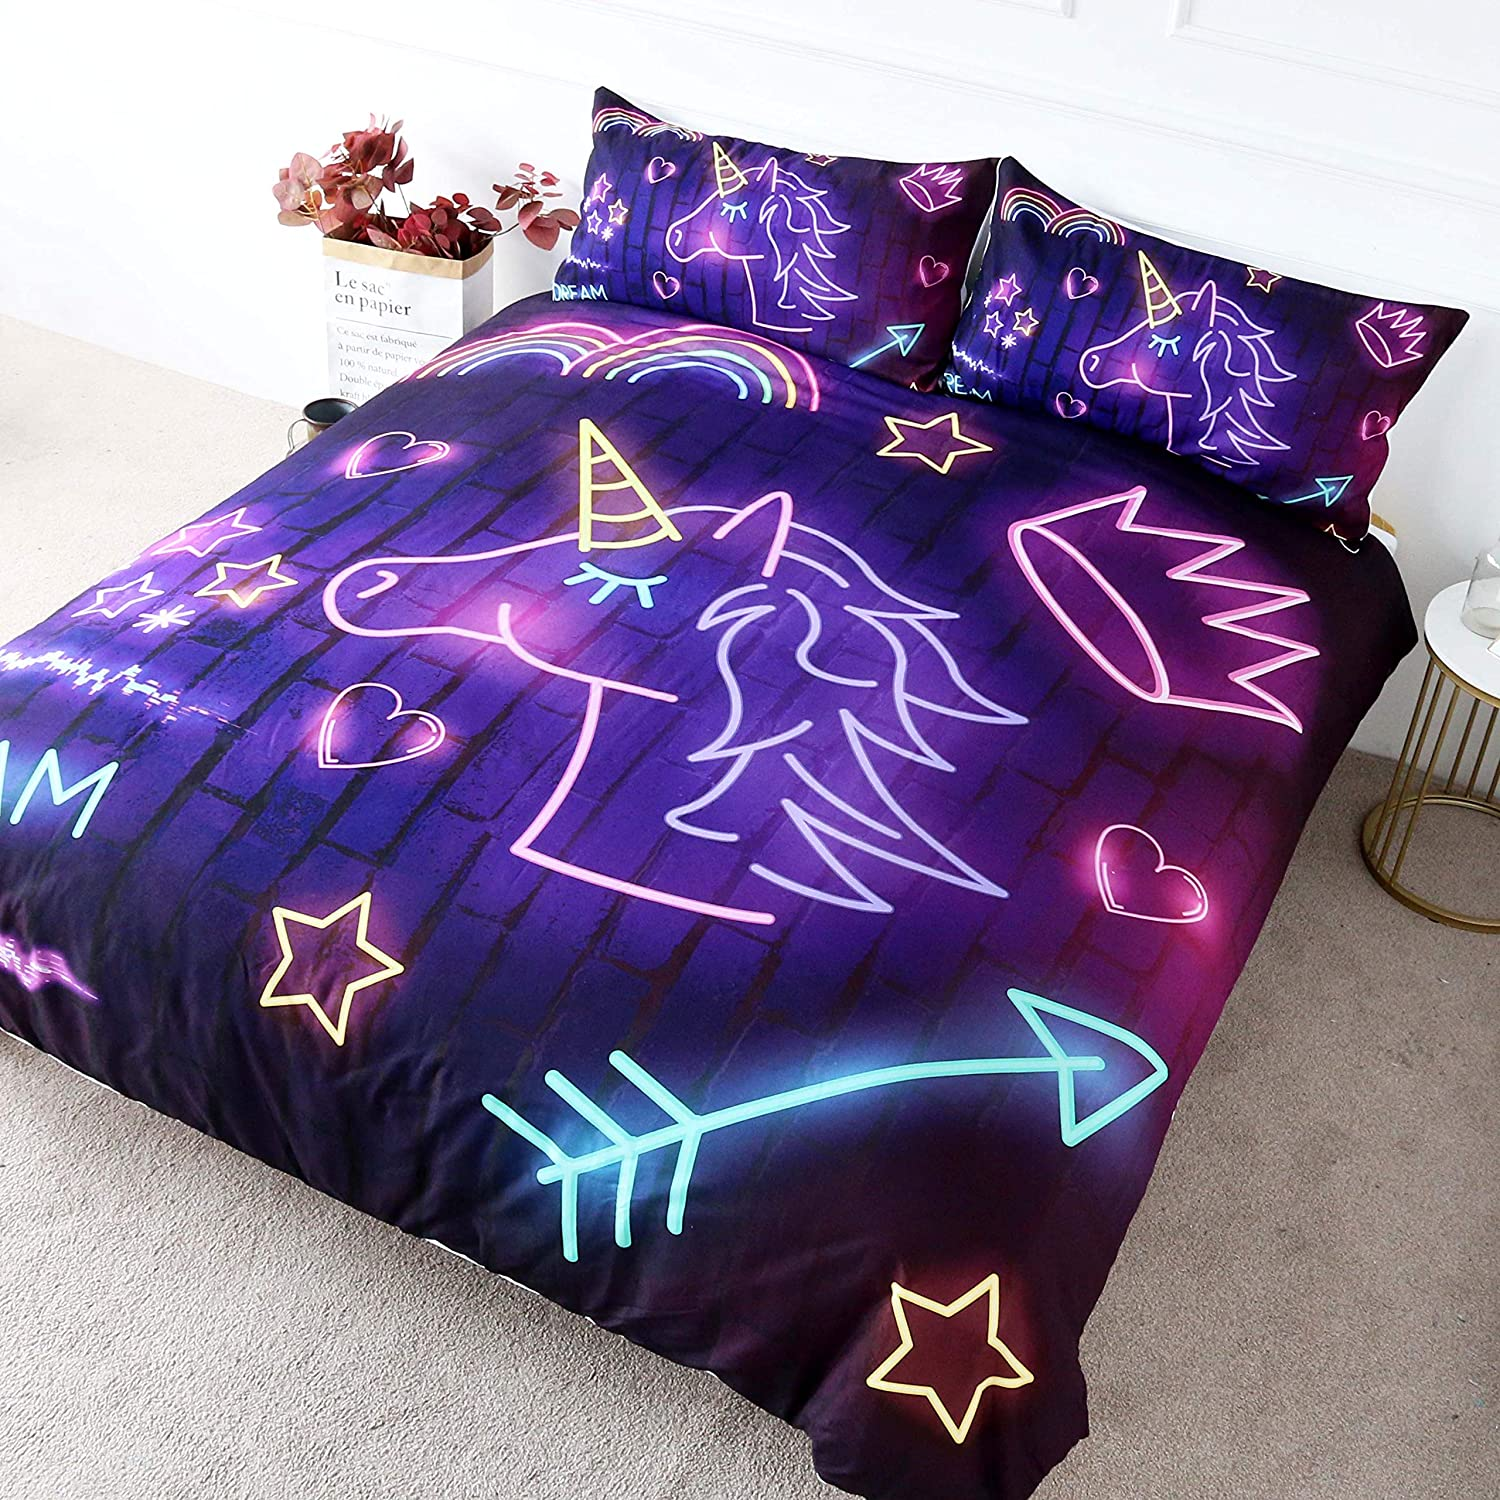 3-Piece-Purple-Unicorn-Designed-Neon-Duvet-Cover-Set-With-Colourful-Print